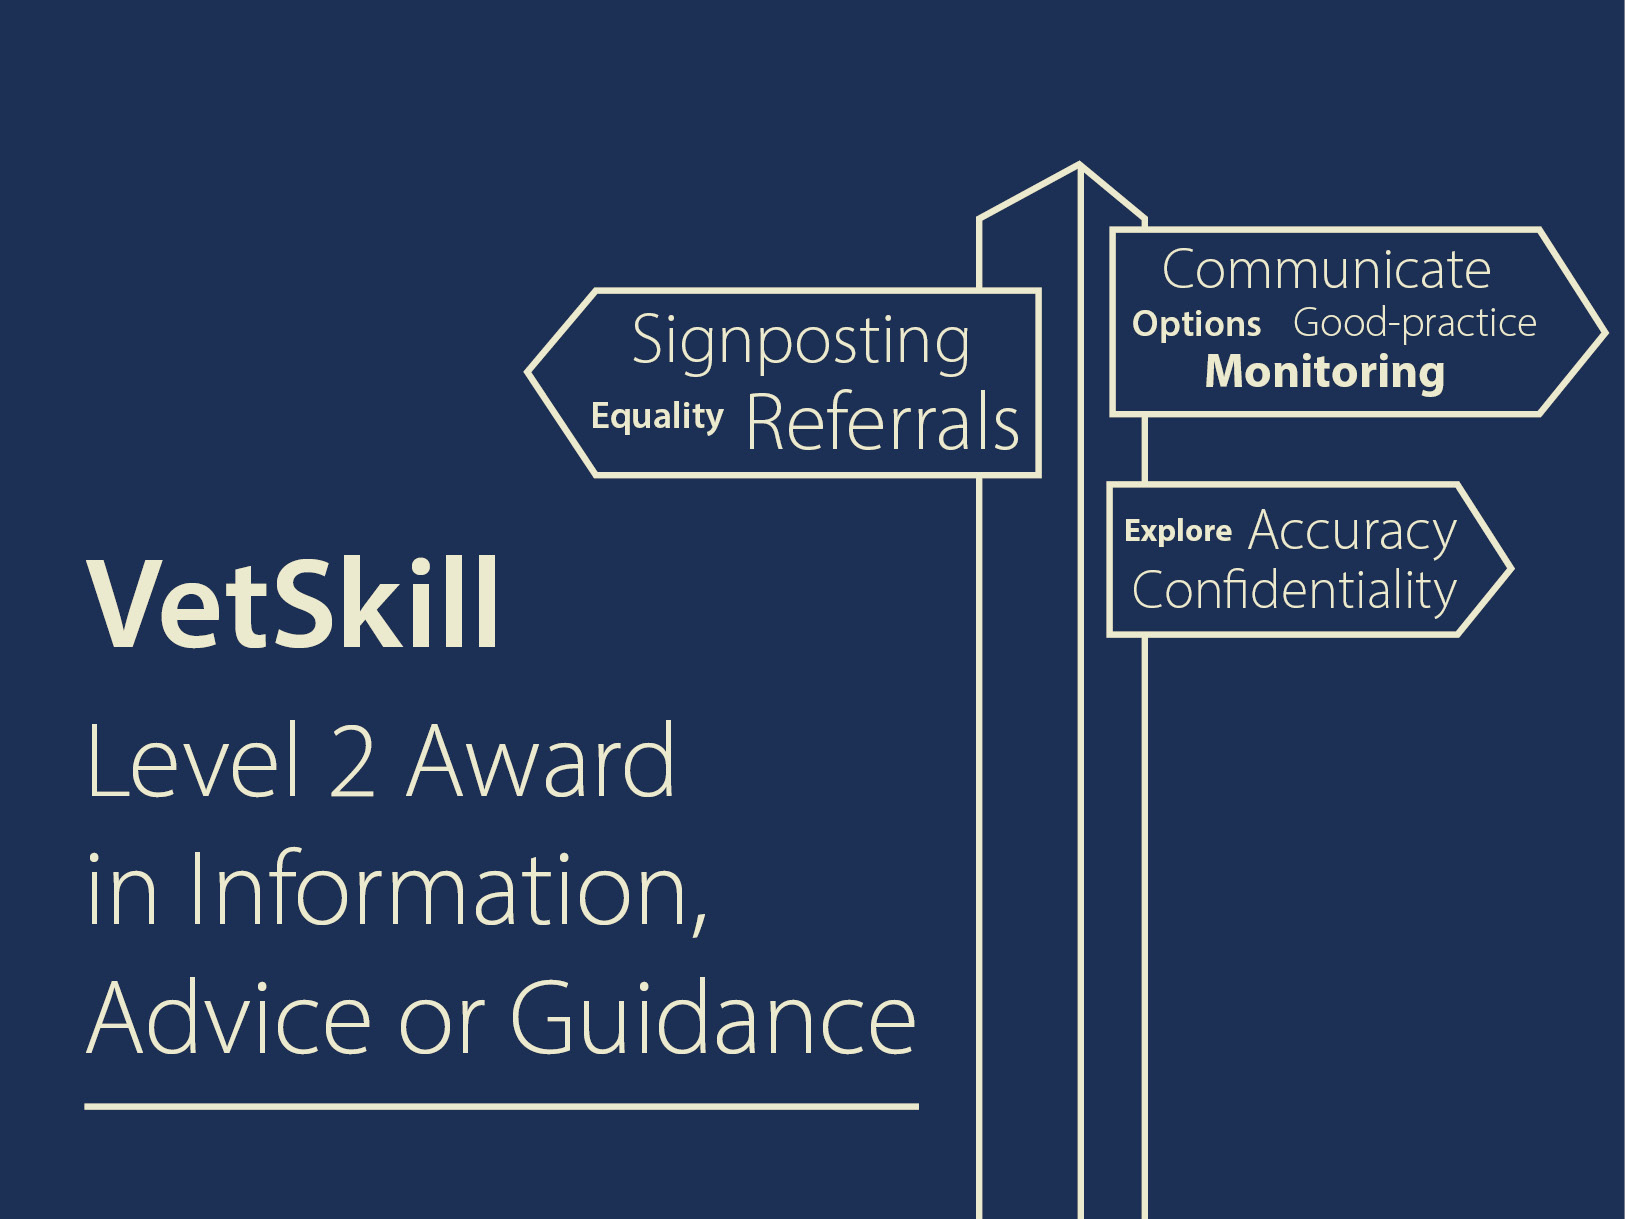 VetSkill Level 2 Award in Information, Advice or Guidance